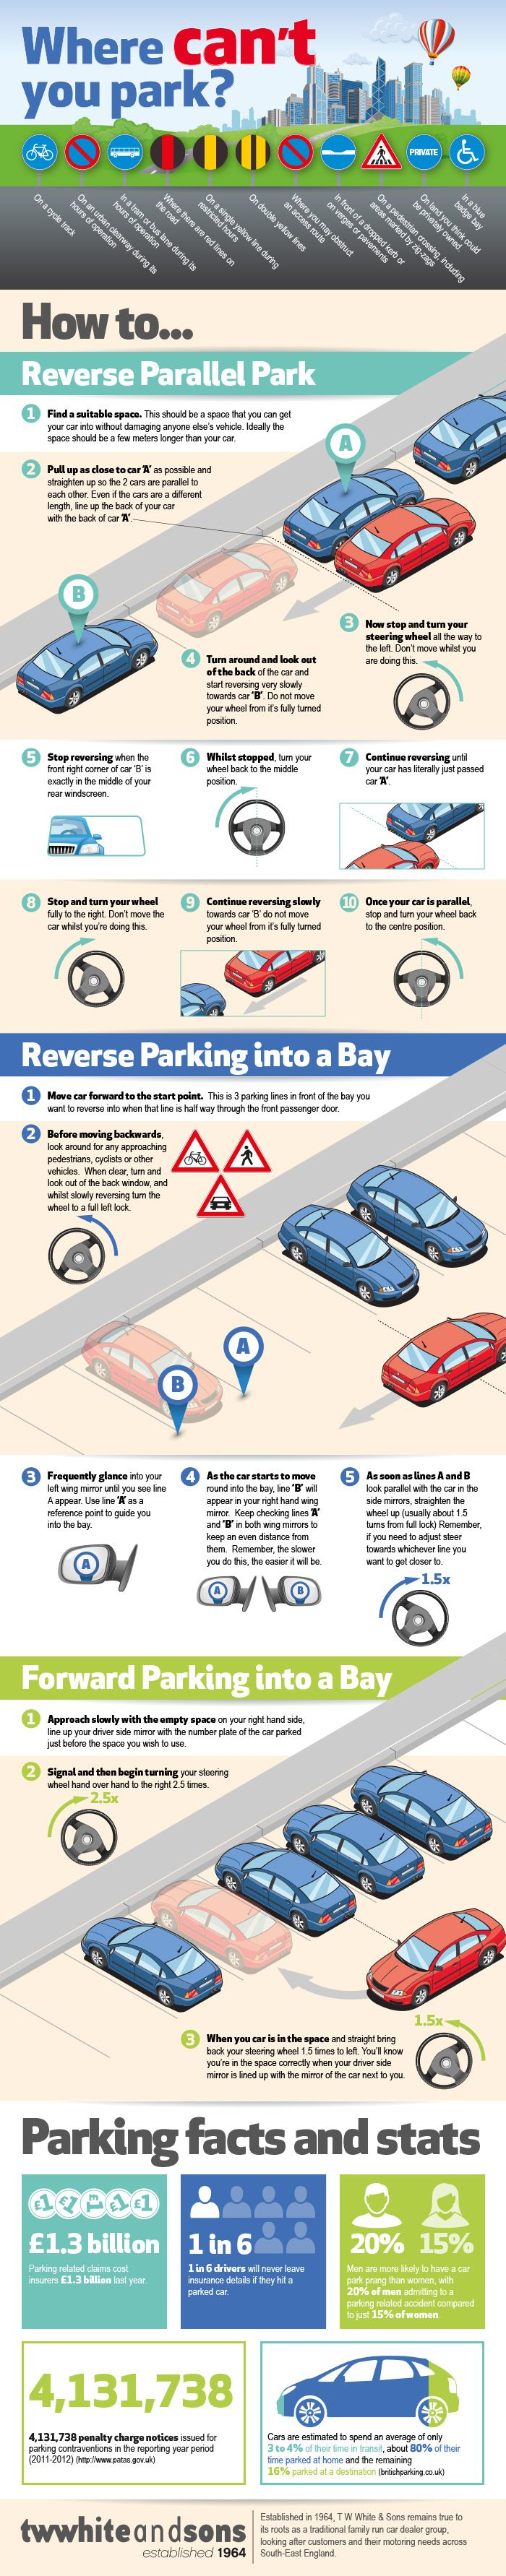 Make Parking a Cinch with This Parking Guide Infographic